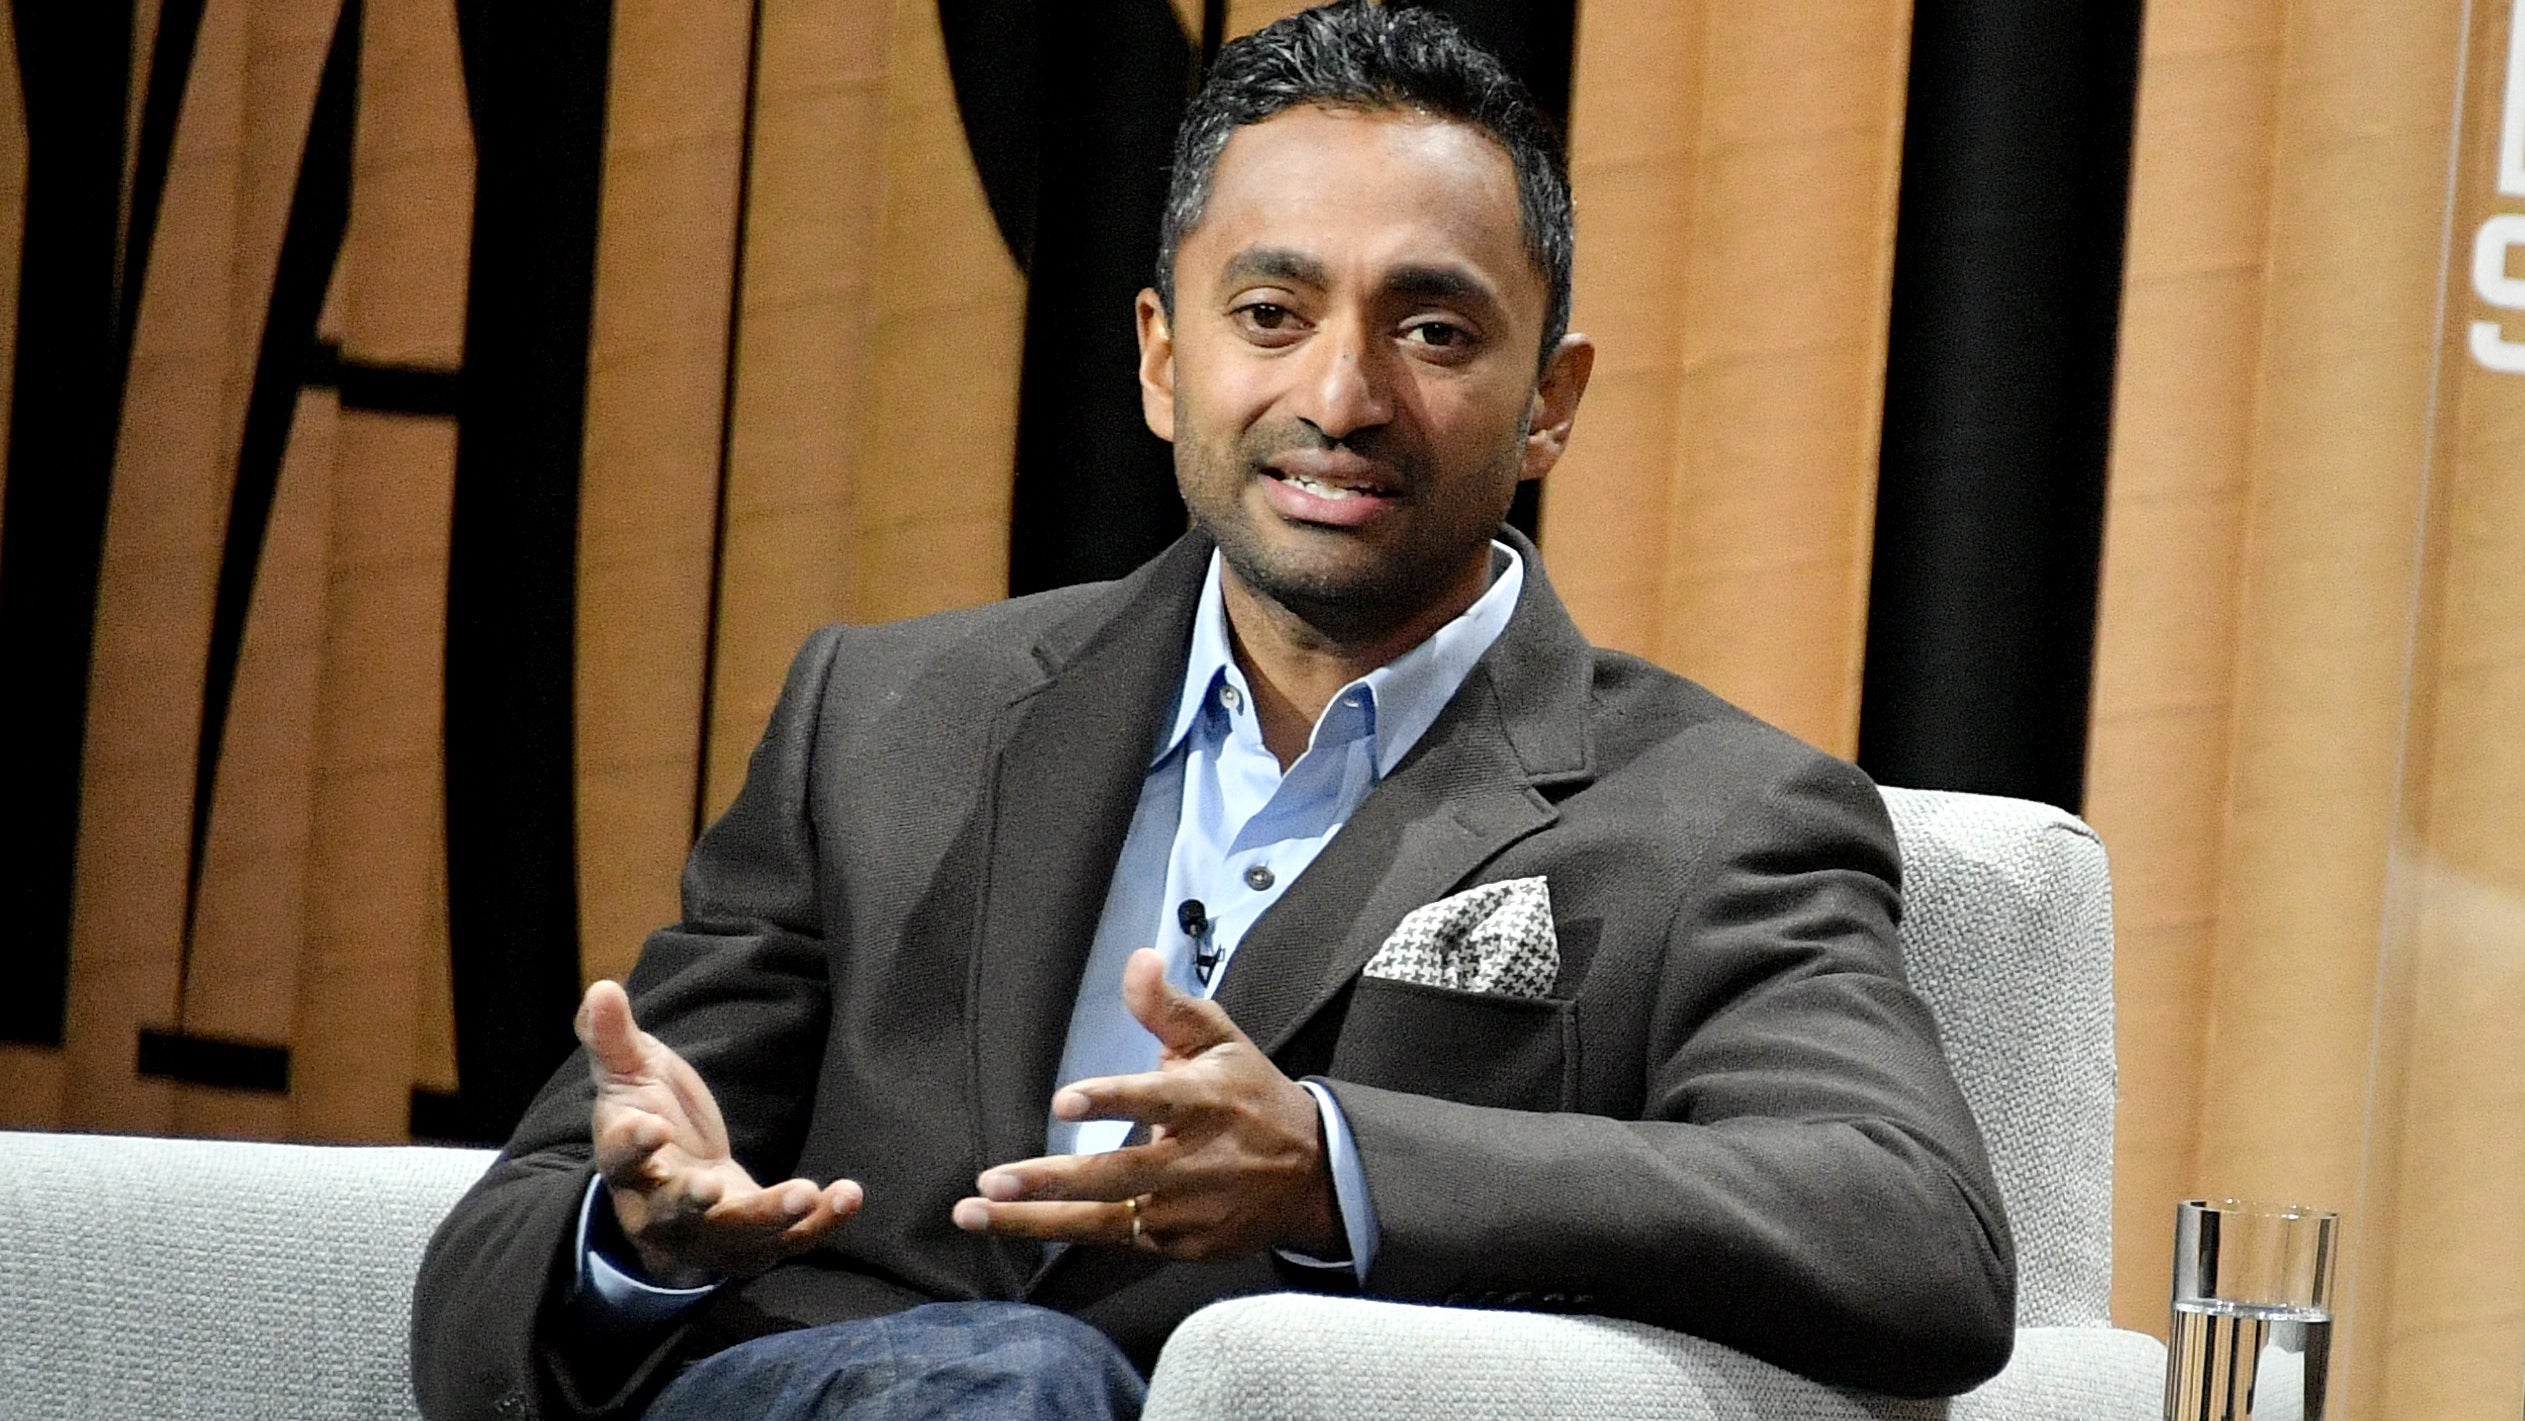 Former Facebook exec feels 'tremendous guilt' for what he helped make